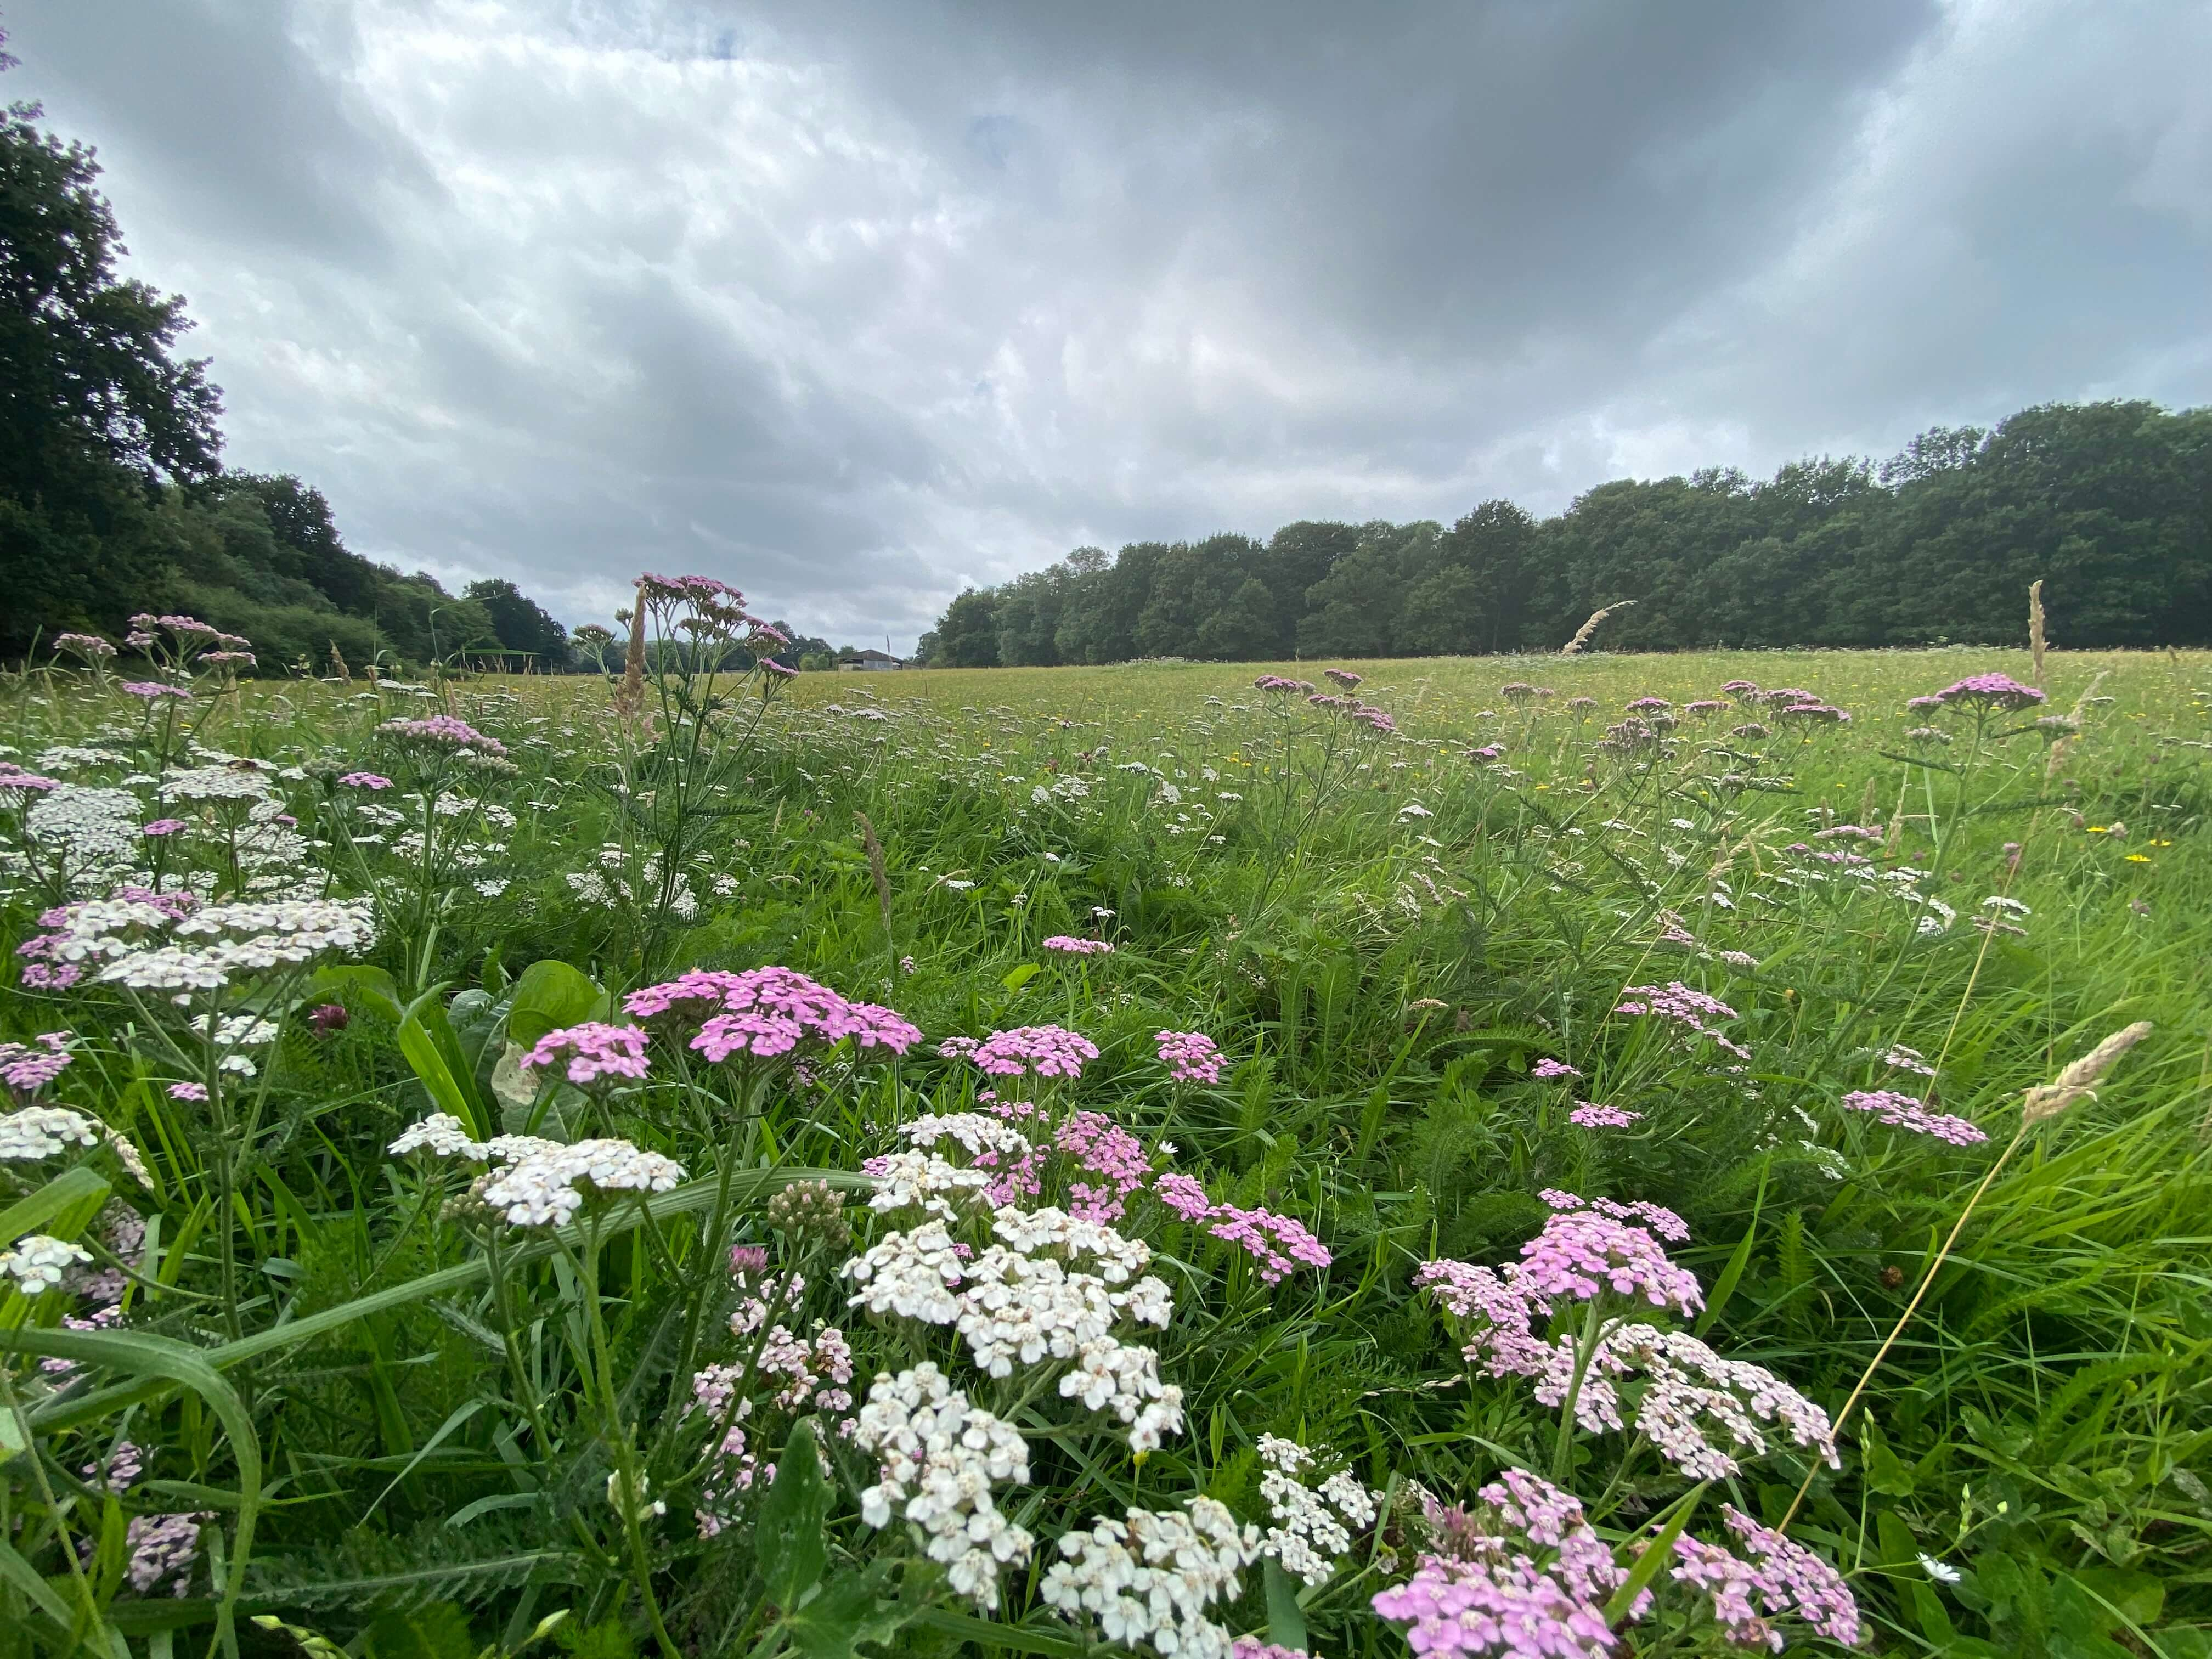 An exploration of two of Bexley's best green spaces: Joyden's Wood and Foots Cray Meadows.